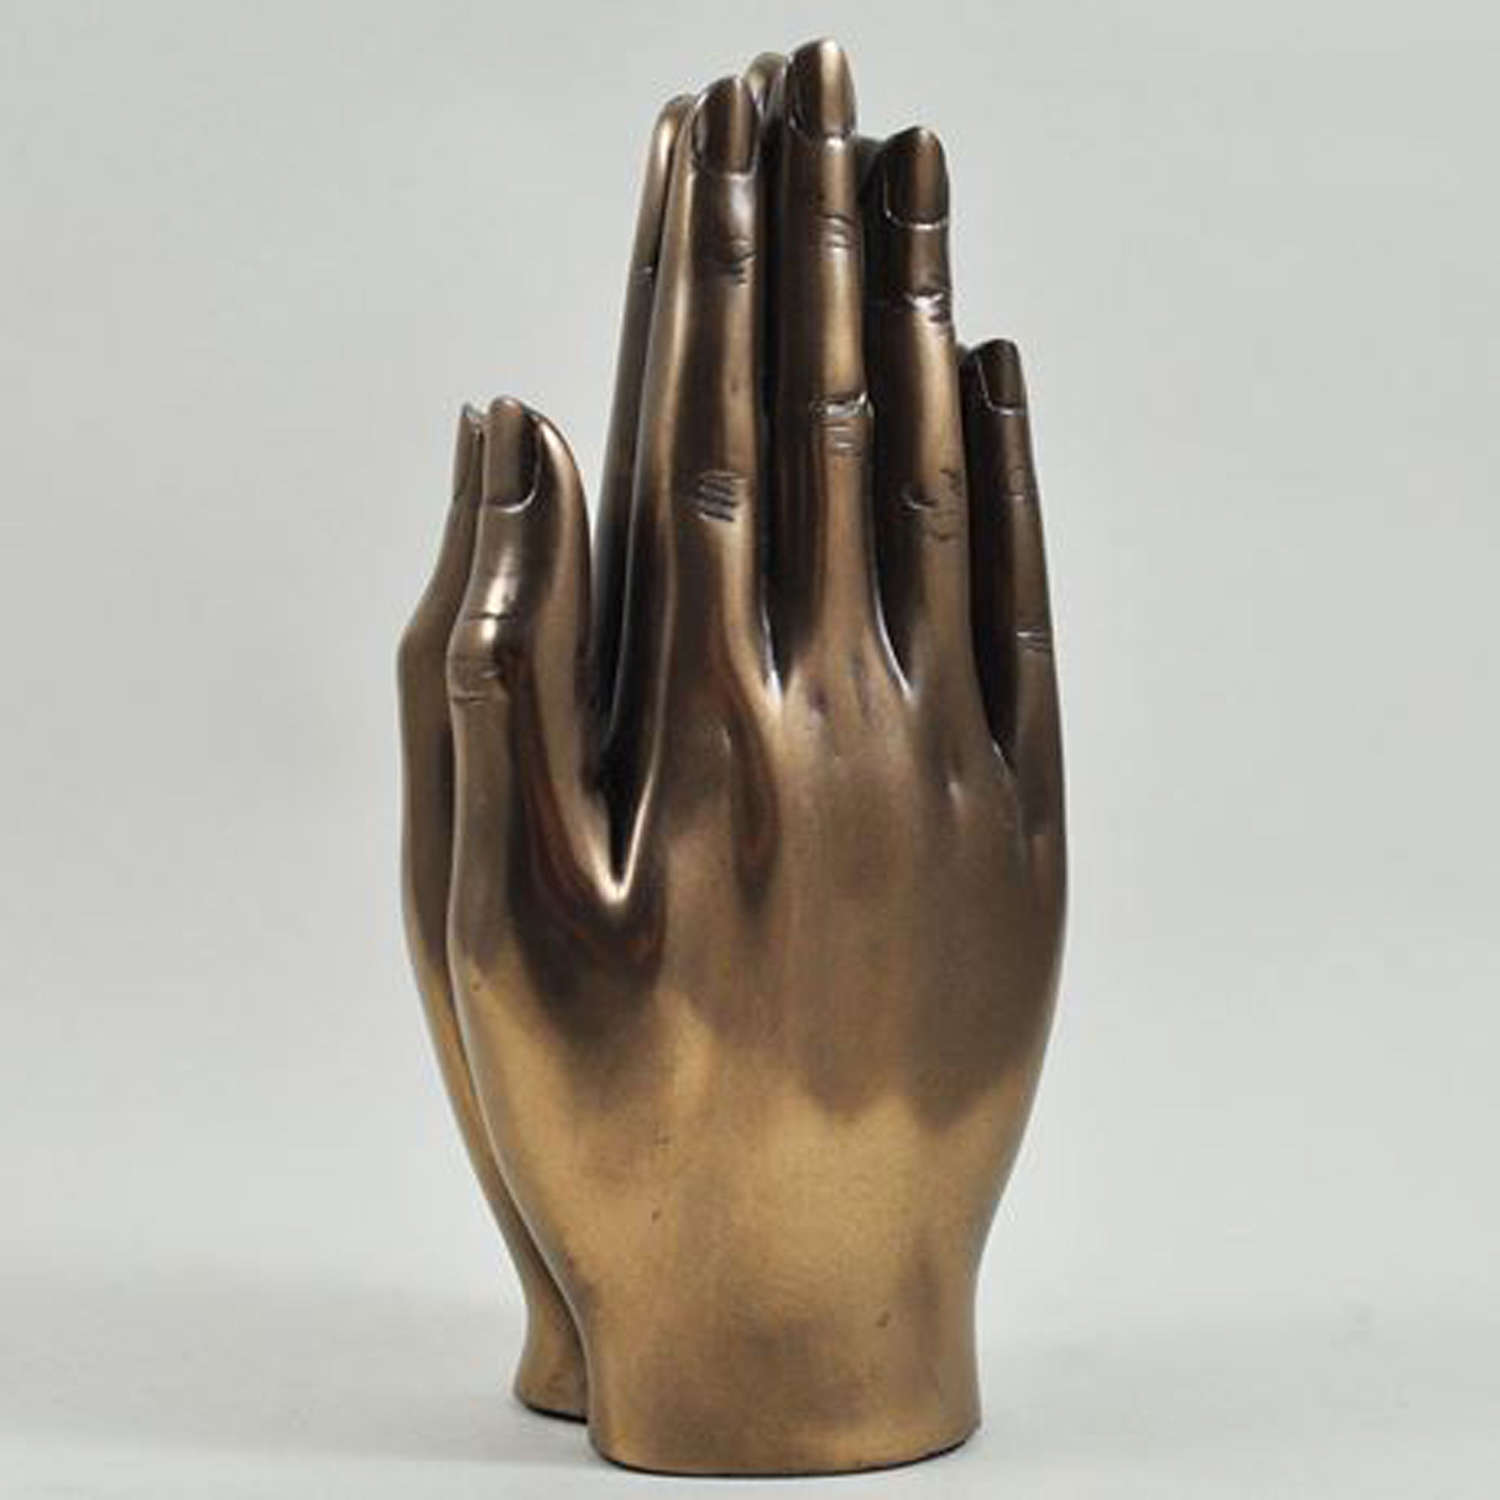 Praying Hands, Cold cast Bronze sculpture